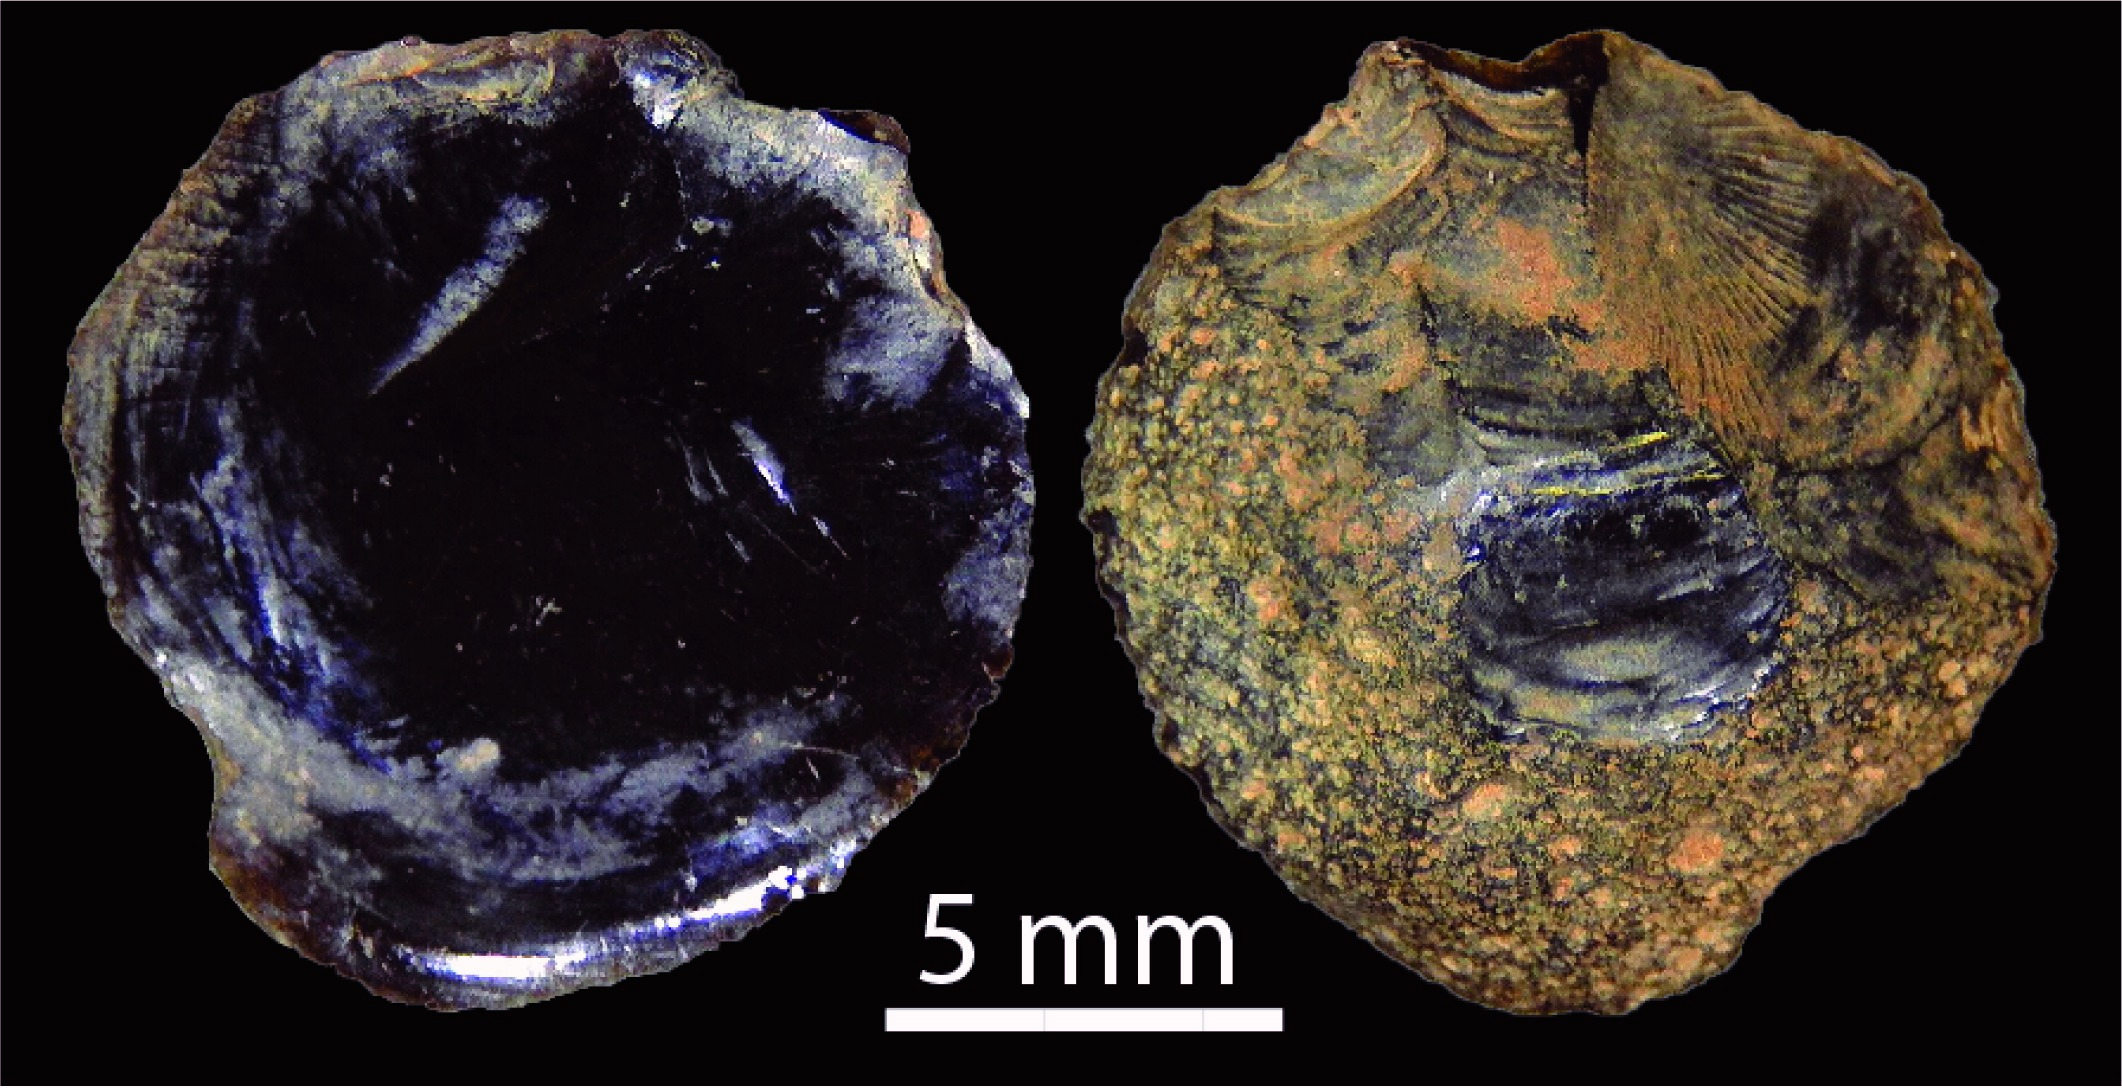 (l) ventral and (r) dorsal surfaces of tektite flake showing pitted dorsal cortex (SG1B1002007). (Image: via PLOS )